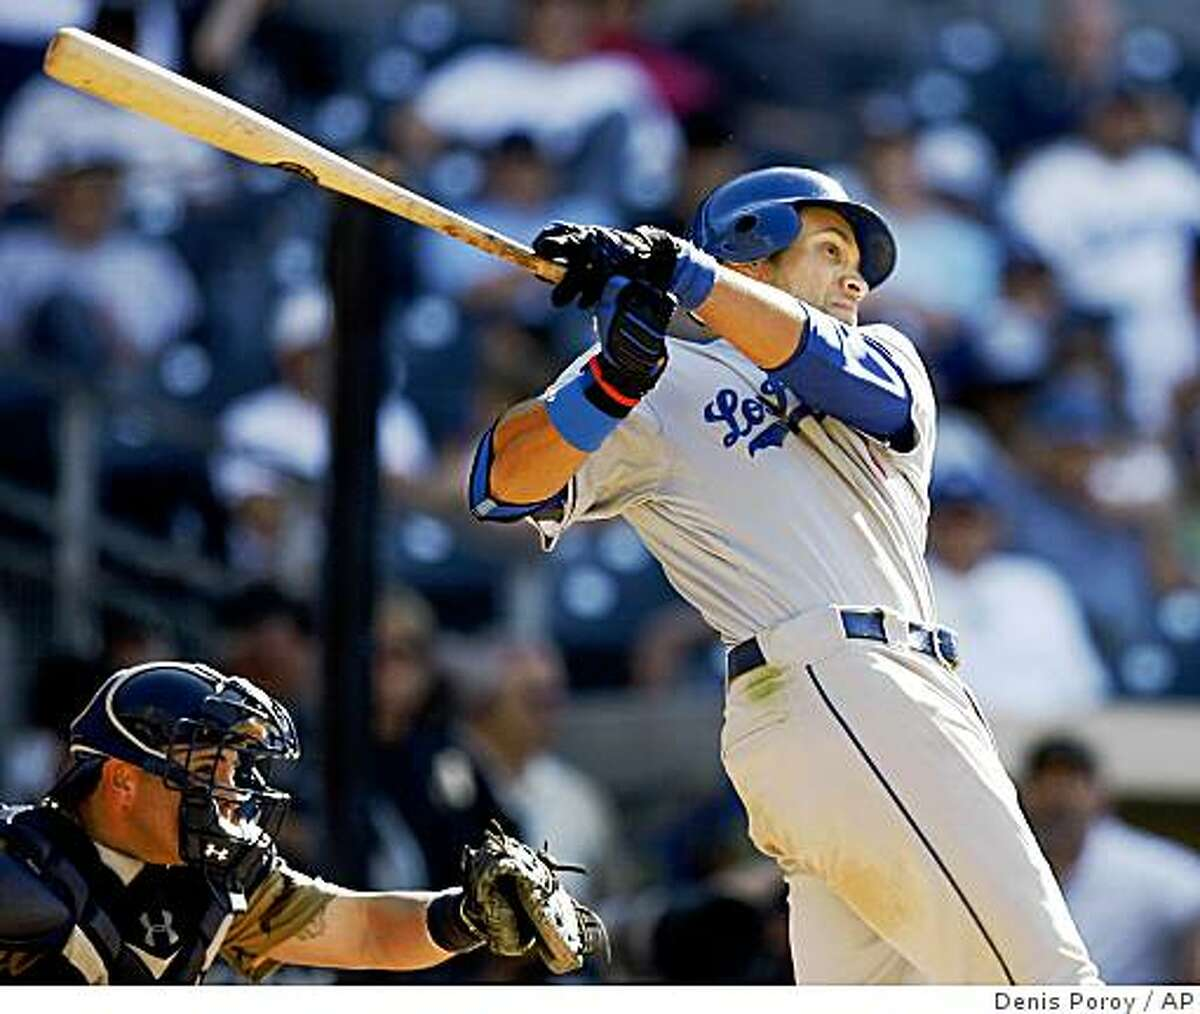 Los Angeles Dodgers' James Loney, right, connects for a go-ahead solo home run as San Diego Padres catcher Eliezer Alfonzo, left, looks on during the 13th inning of a baseball game Sunday, July 5, 2009, in San Diego. The Dodgers won 7-6. (AP Photo/Denis Poroy)